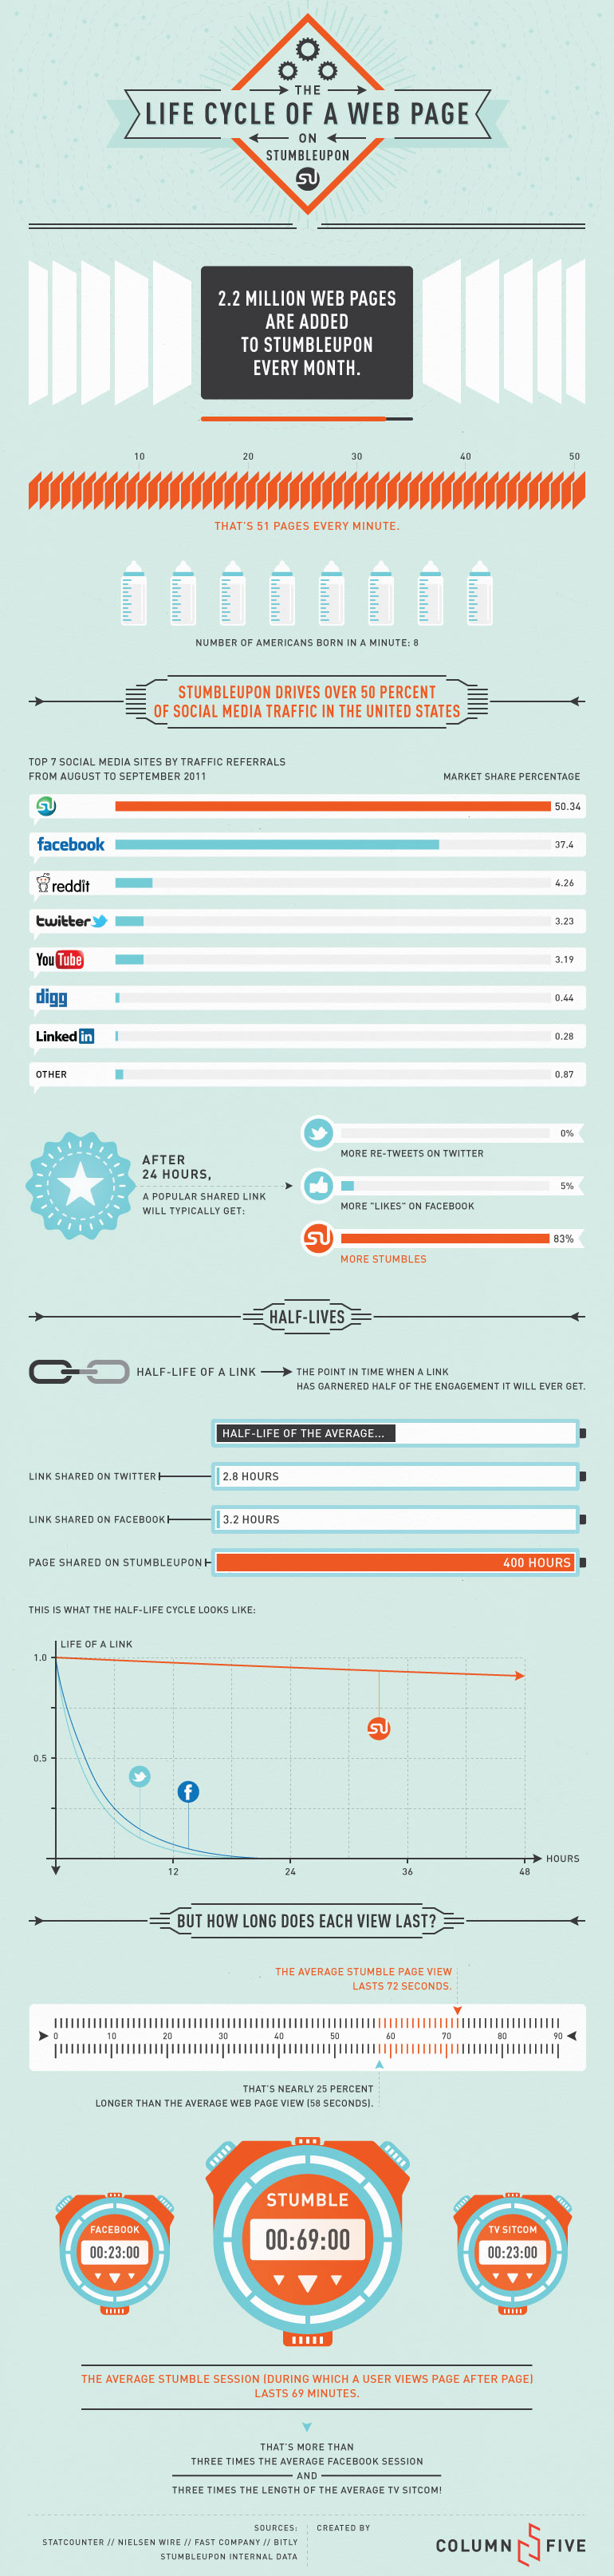 lifecycle of a web page SU Social Media   What is StumbleUpon?